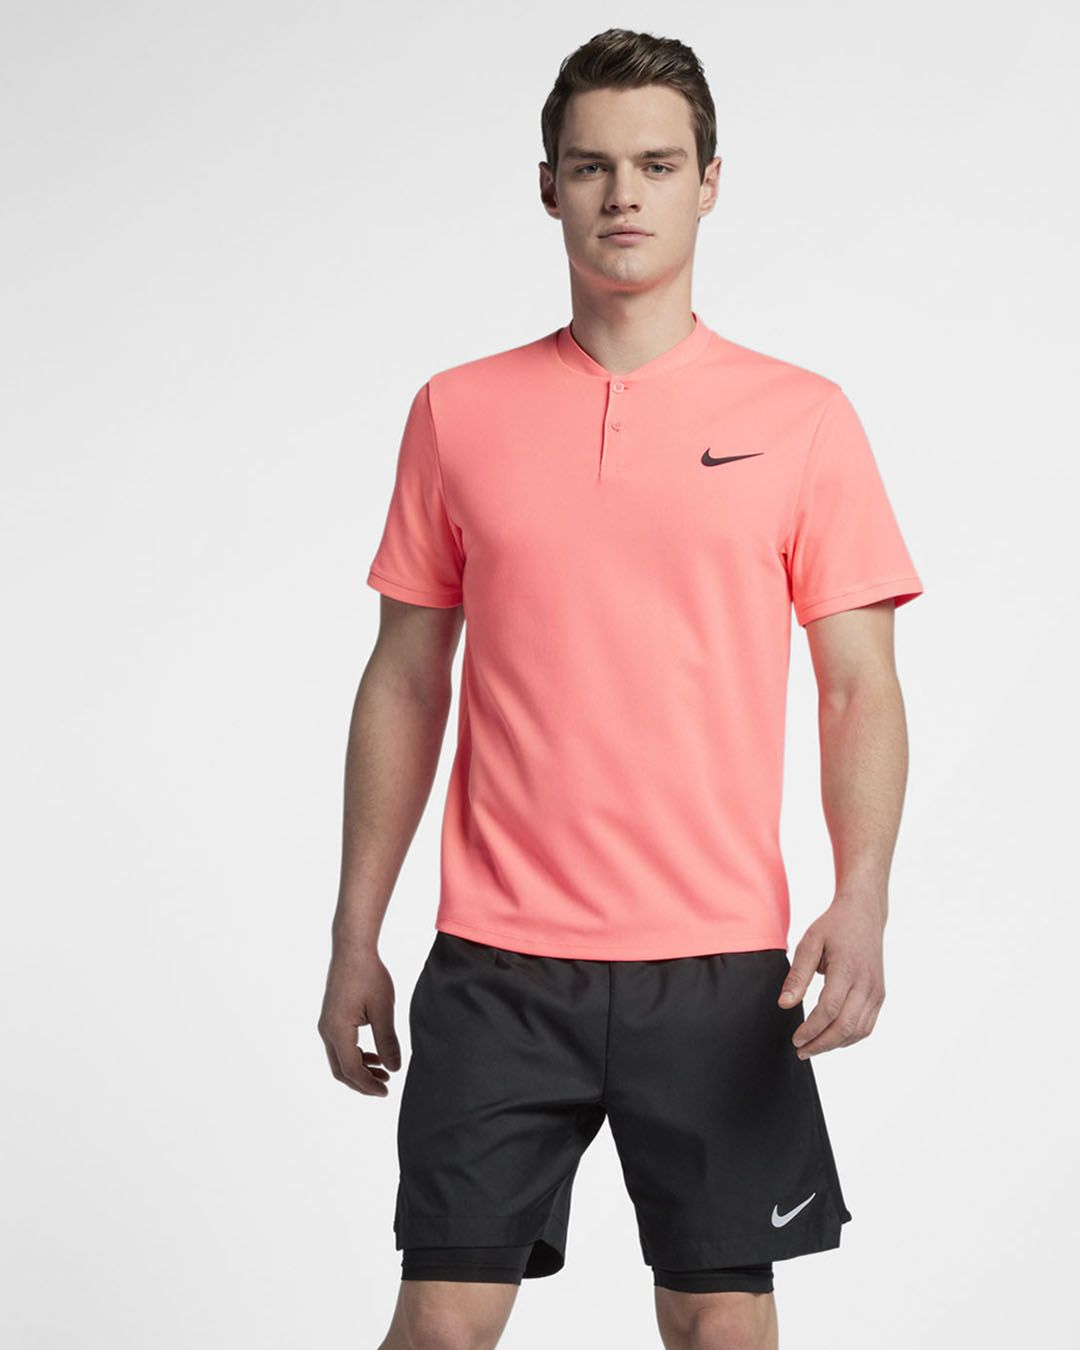 This Nike Court Advantage Polo In Lava Glow Is Just One Of The New Colors From Nike S Spring 2018 Tennis Apparel Collection Tennis Clothes Mens Tennis Nike Men